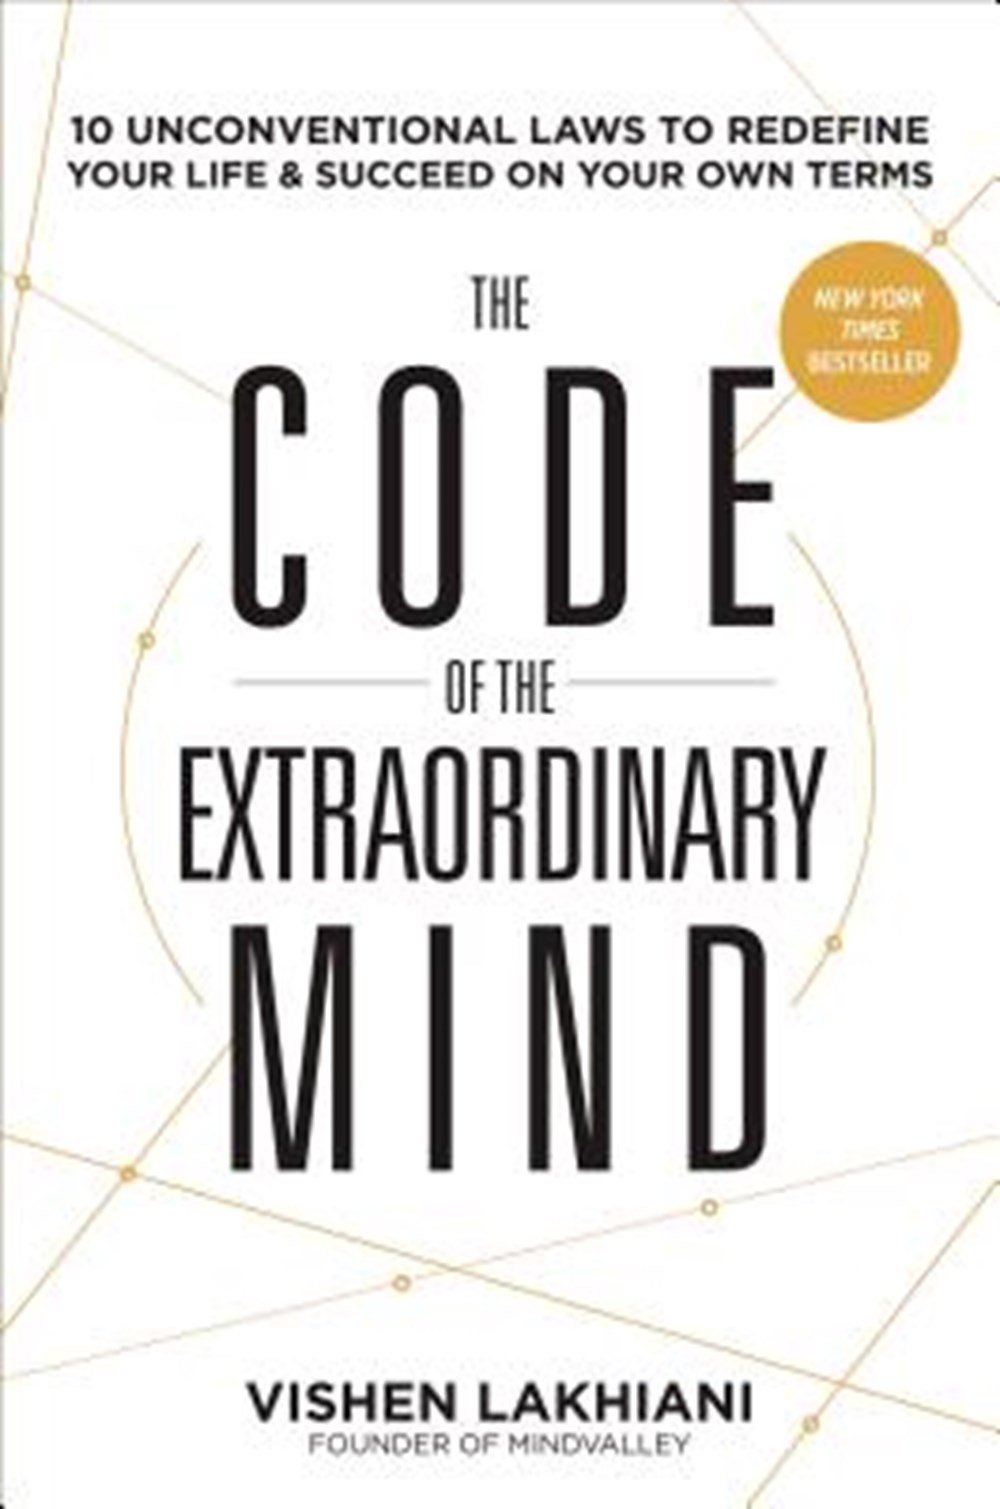 Code of the Extraordinary Mind 10 Unconventional Laws to Redefine Your Life and Succeed on Your Own